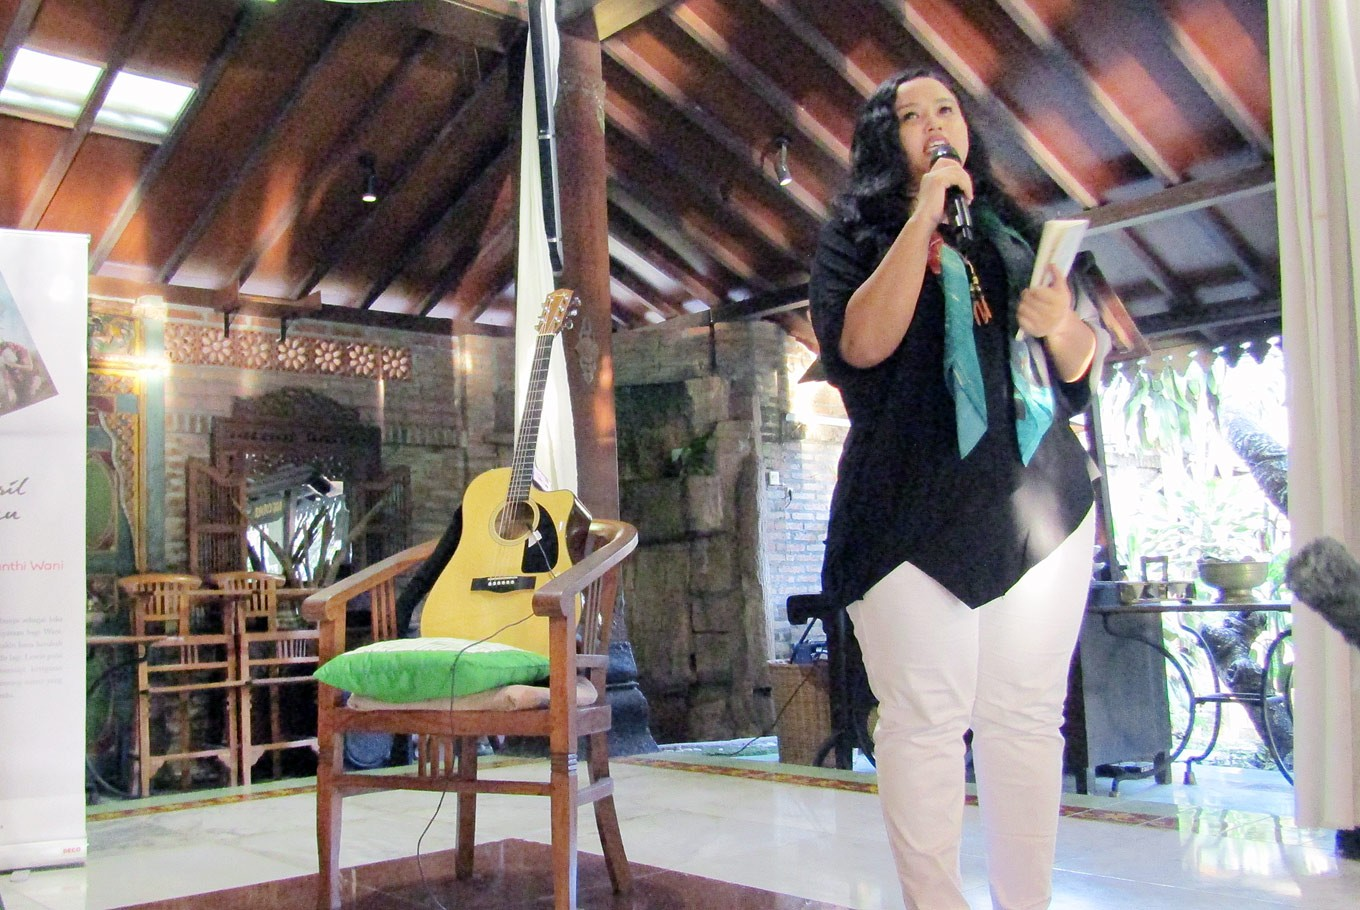 Wiji Thukul's daughter heals tragedy with poetry